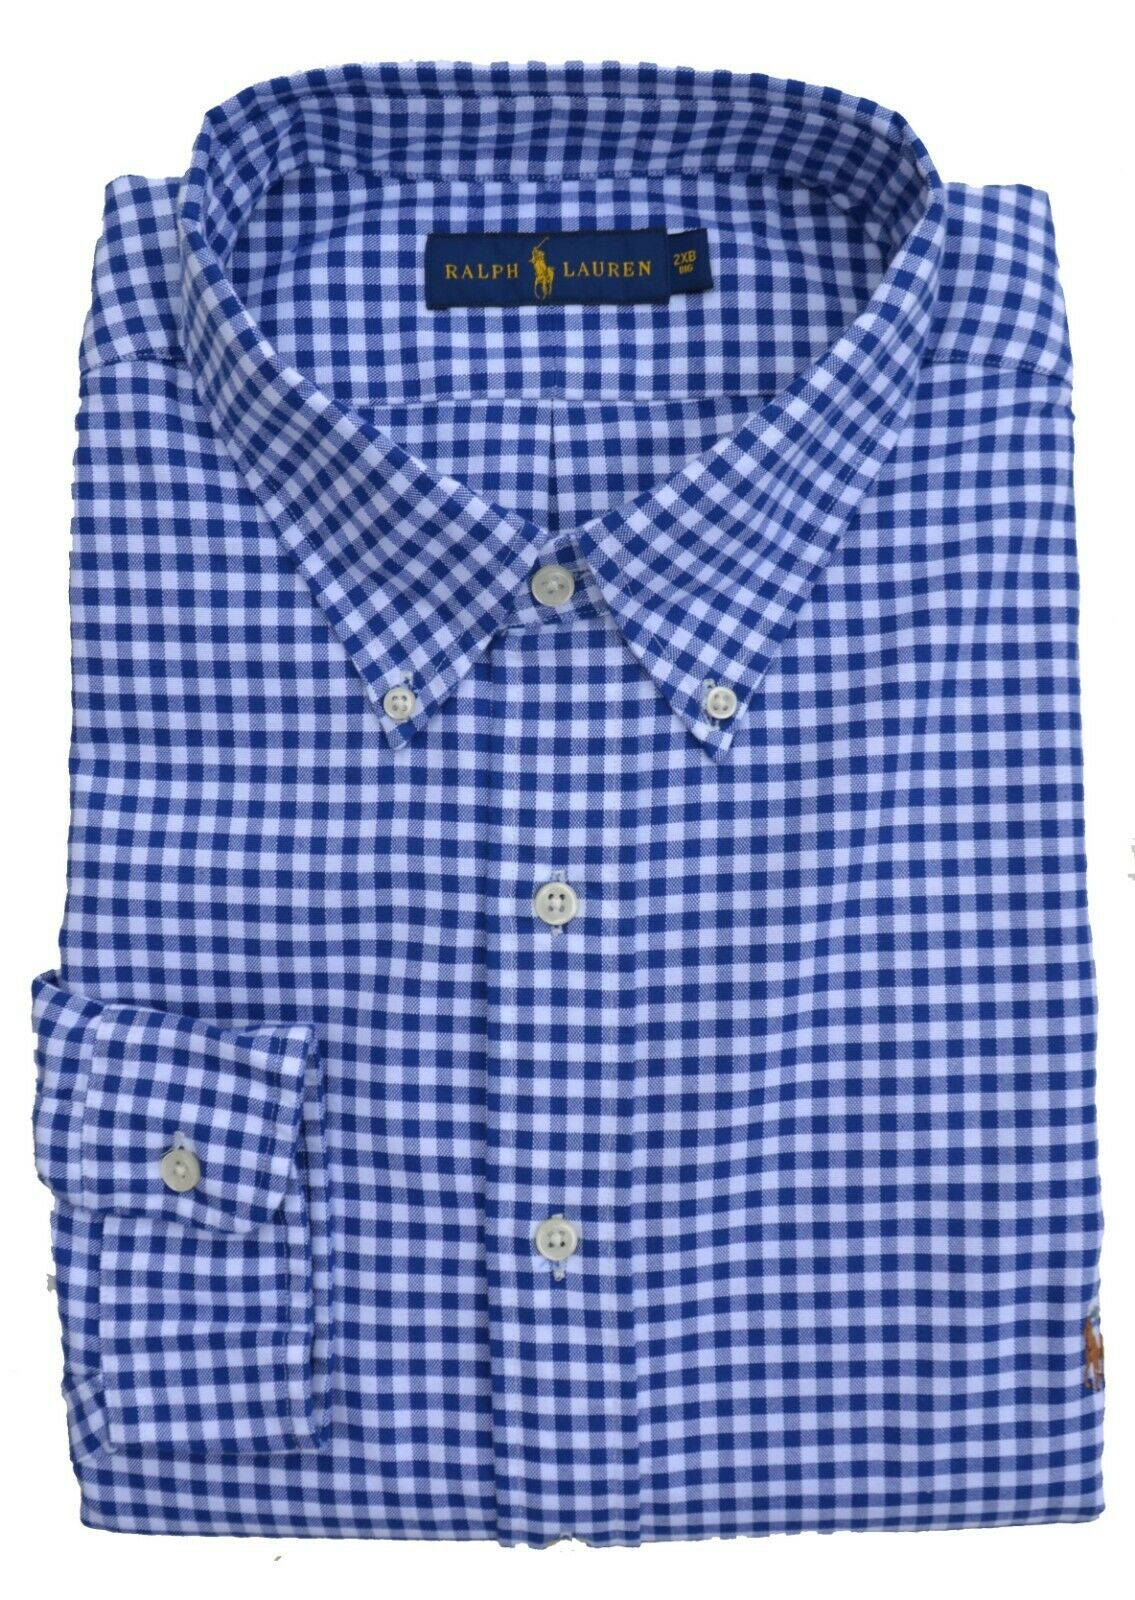 Ralph Lauren Big & Tall - Shirt Button down bluee White Plaid - 2xb 3xb 5xb - New